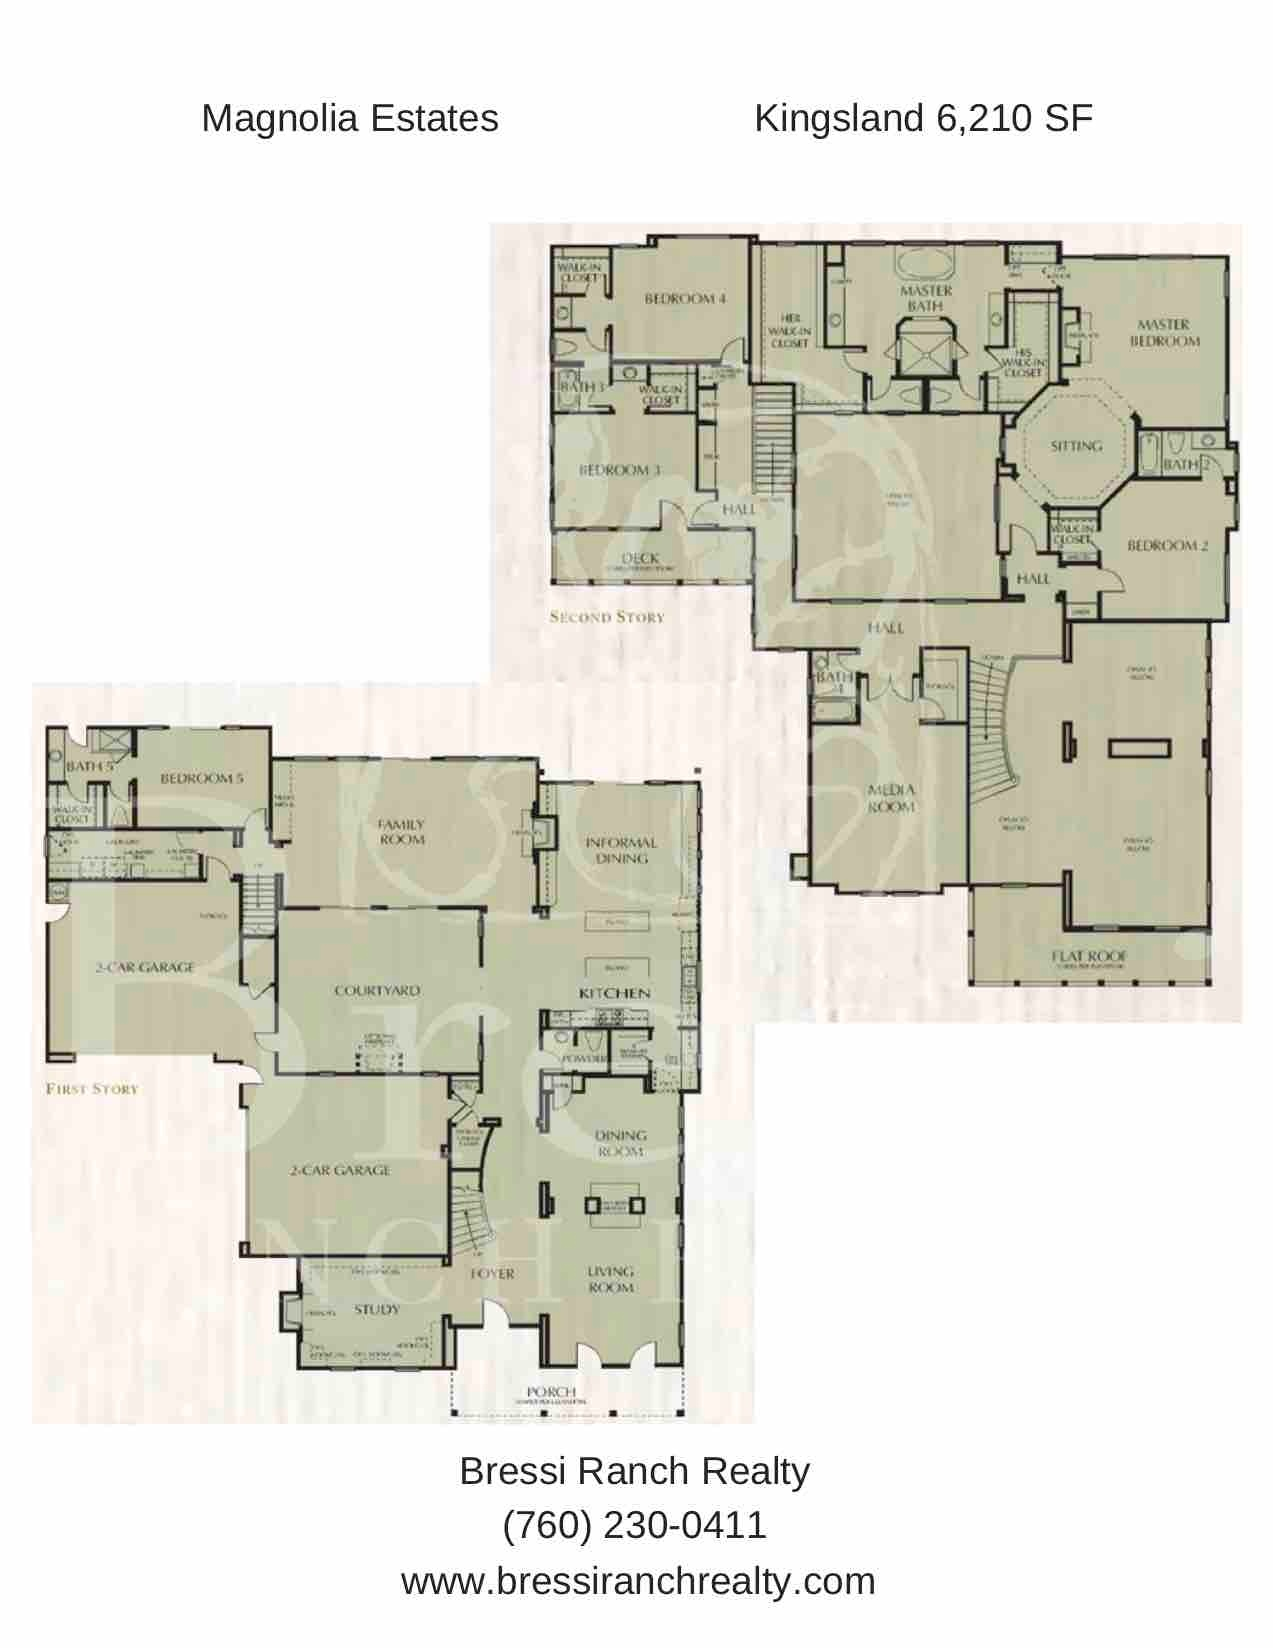 Magnolia Estates Kingsland Floor Plan Bressi Ranch